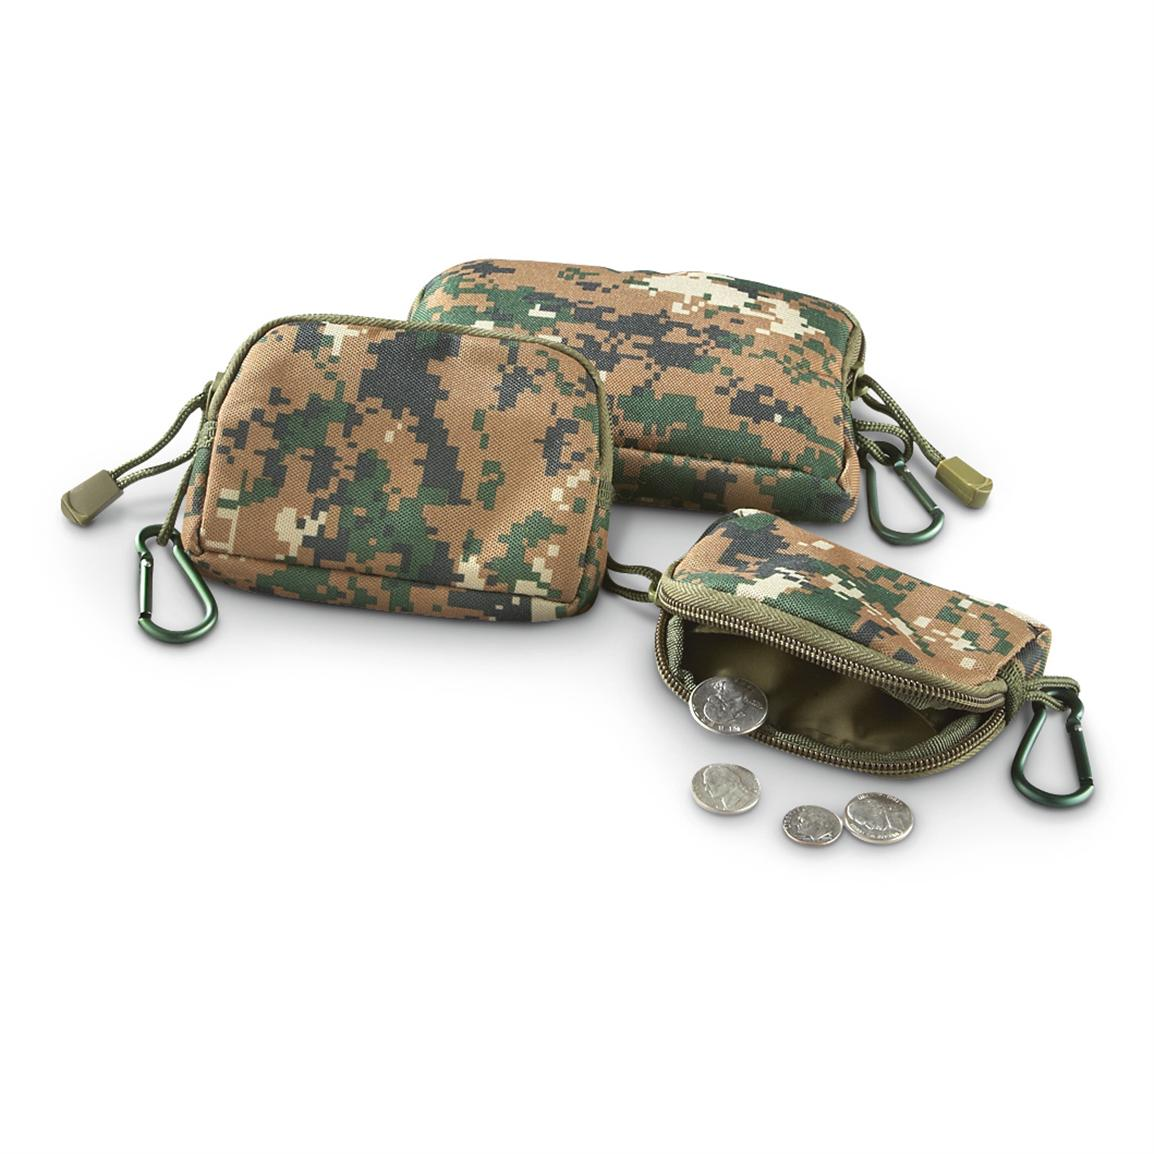 3-Pc. Set of Fox Tactical® Padded Field Wallets, Digital Woodland